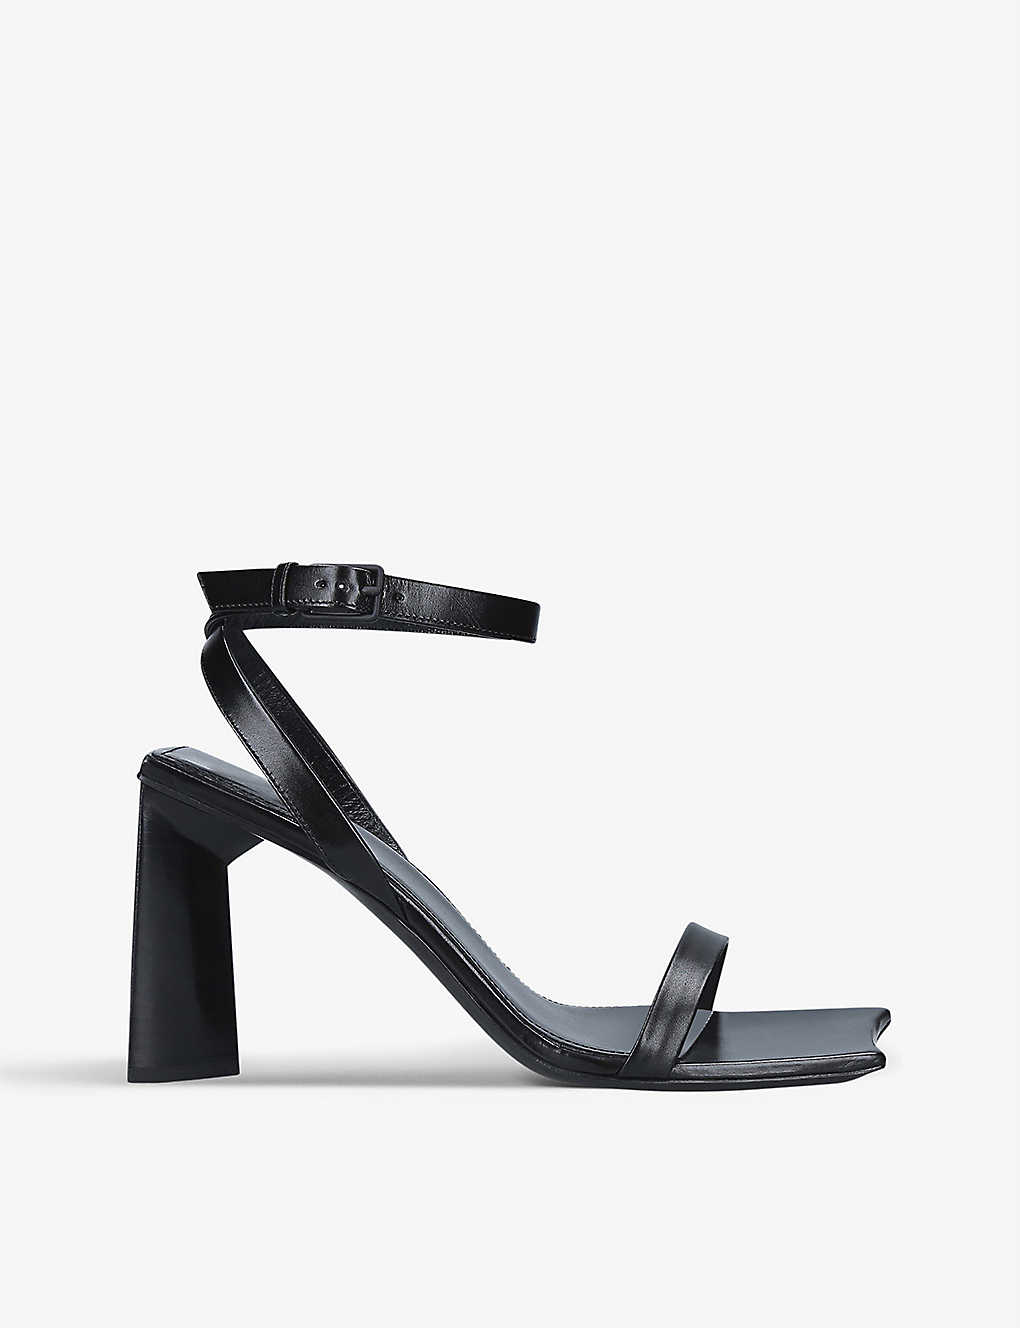 Balenciaga Moon 90 leather block heel sandals